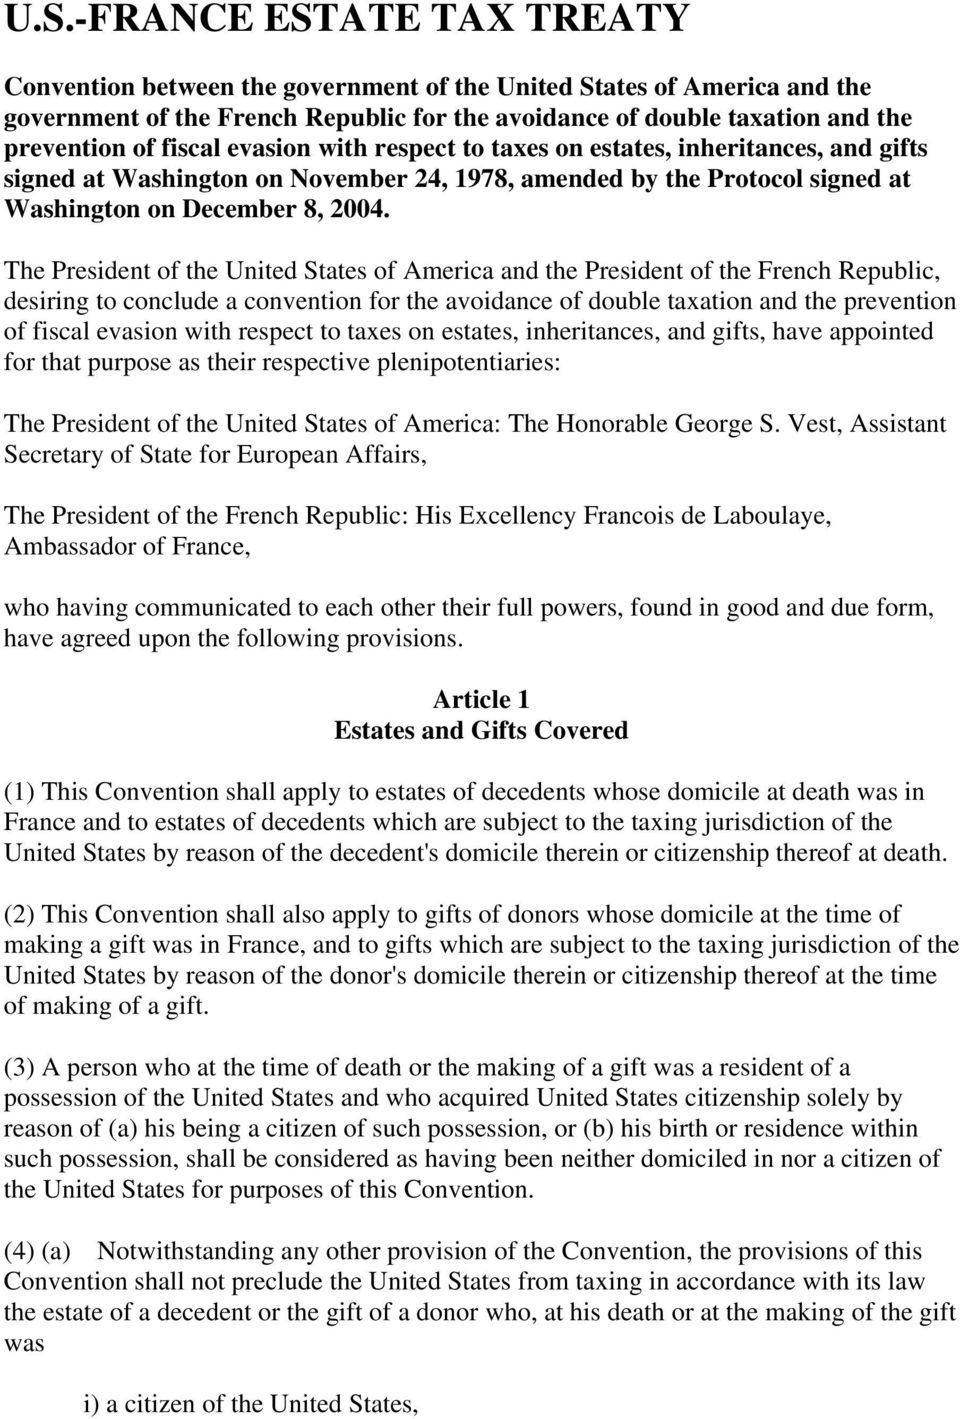 The President of the United States of America and the President of the French Republic, desiring to conclude a convention for the avoidance of double taxation and the prevention of fiscal evasion